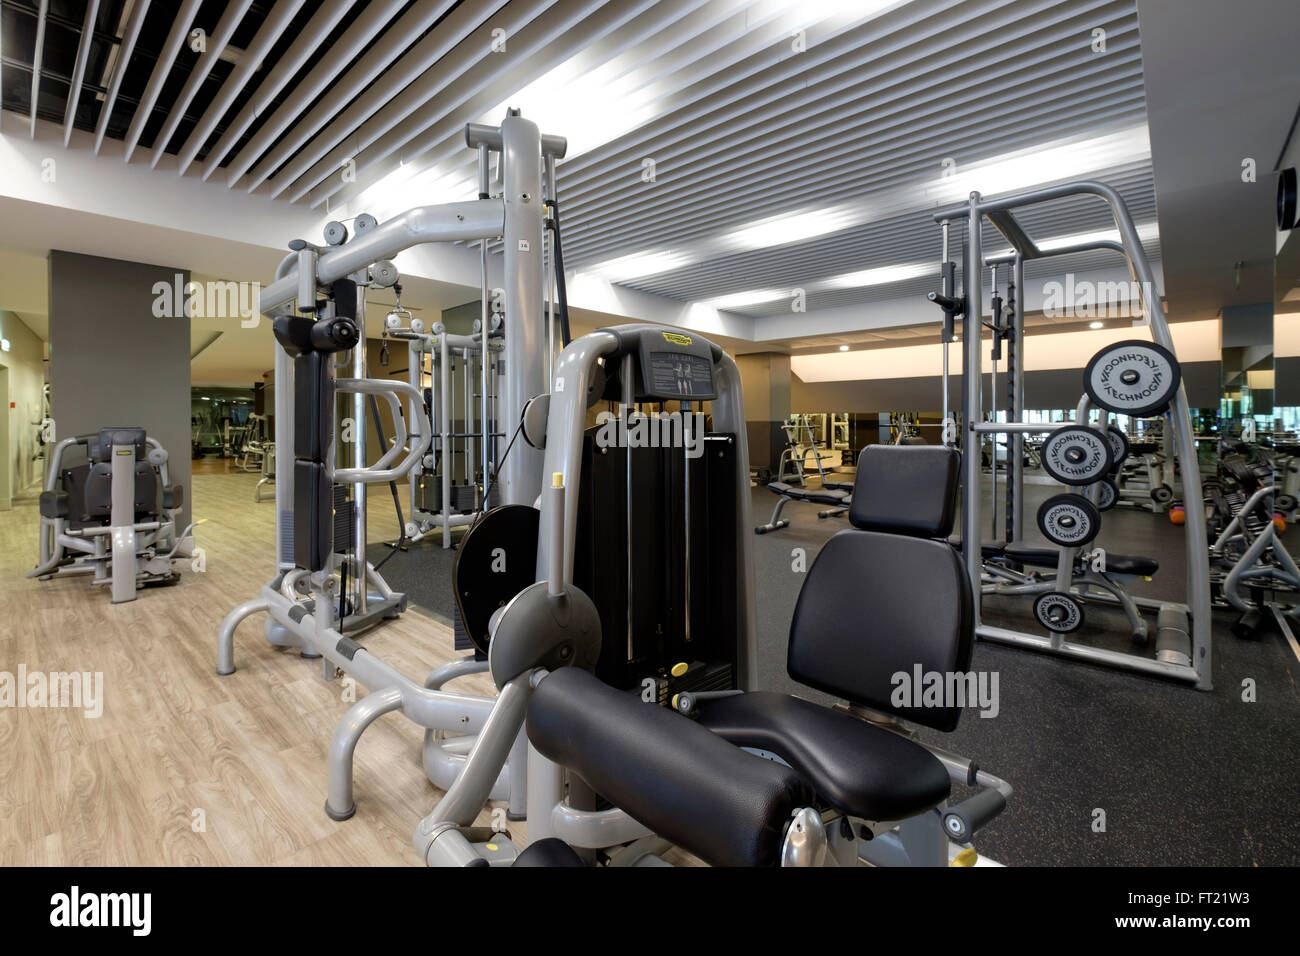 Equipment at an empty gym - Stock Image